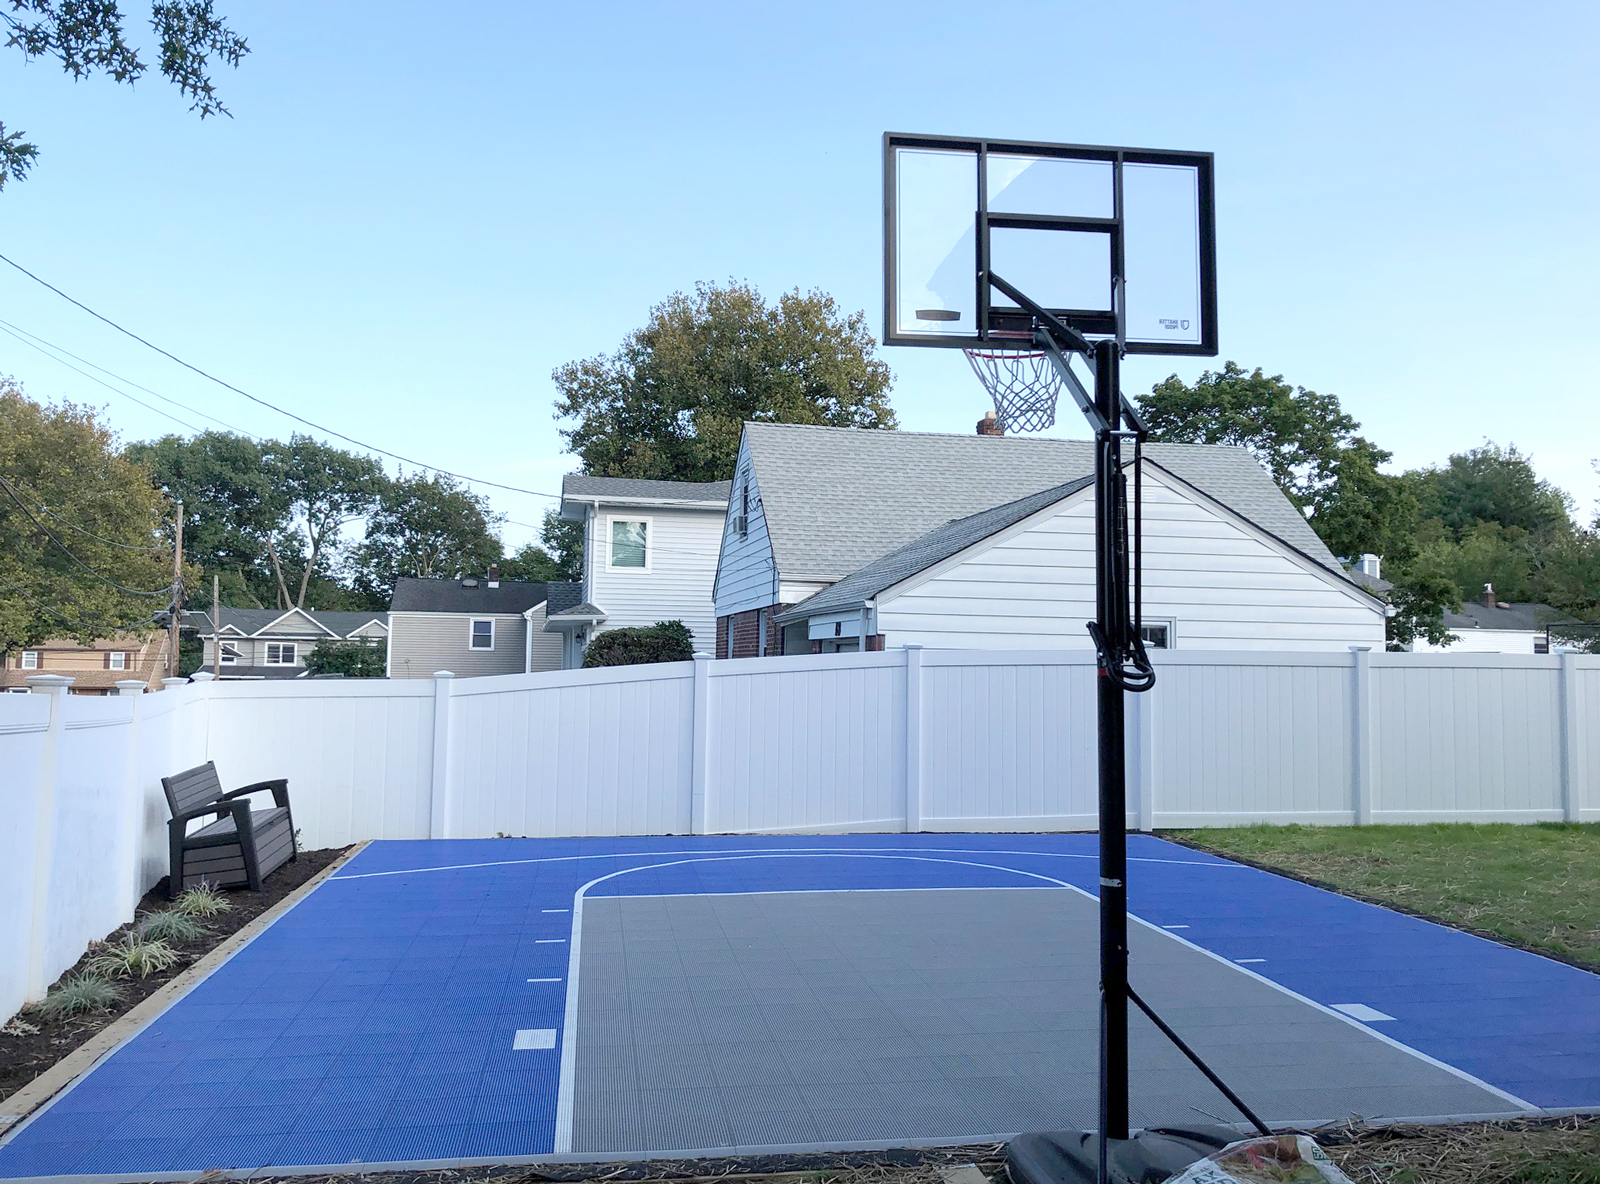 Bright blue and gray basketball half court in a fenced backyard